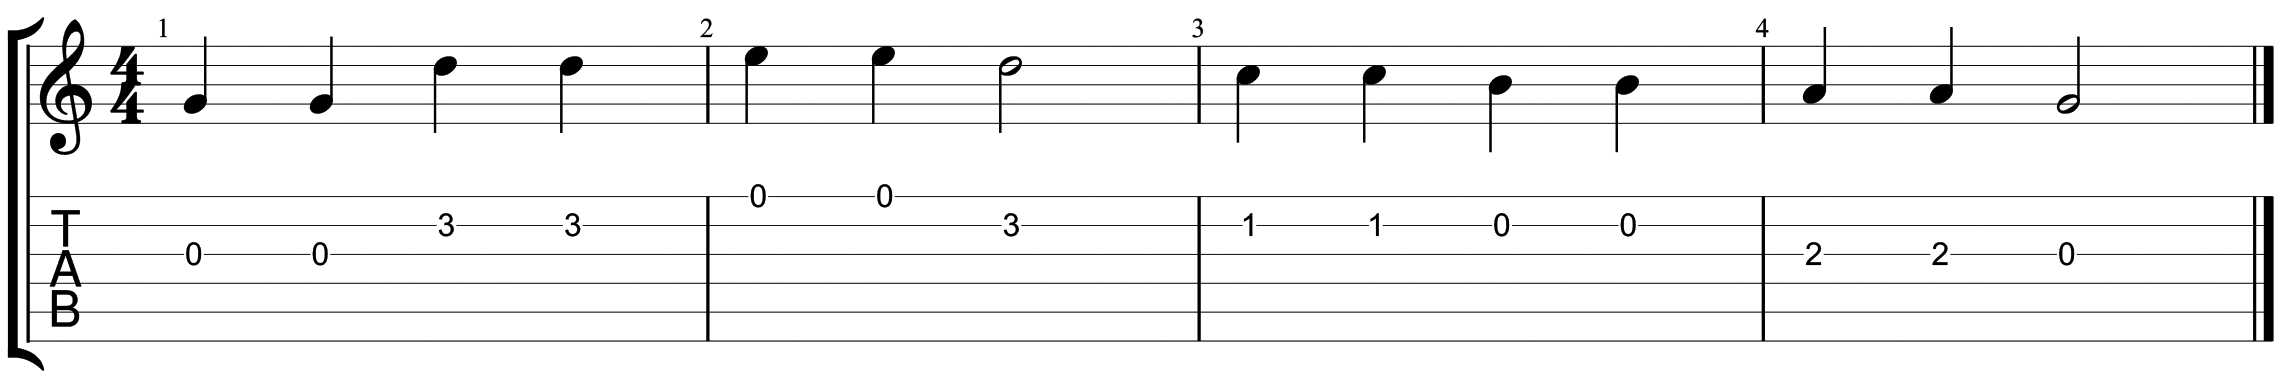 How to read guitar tab 6